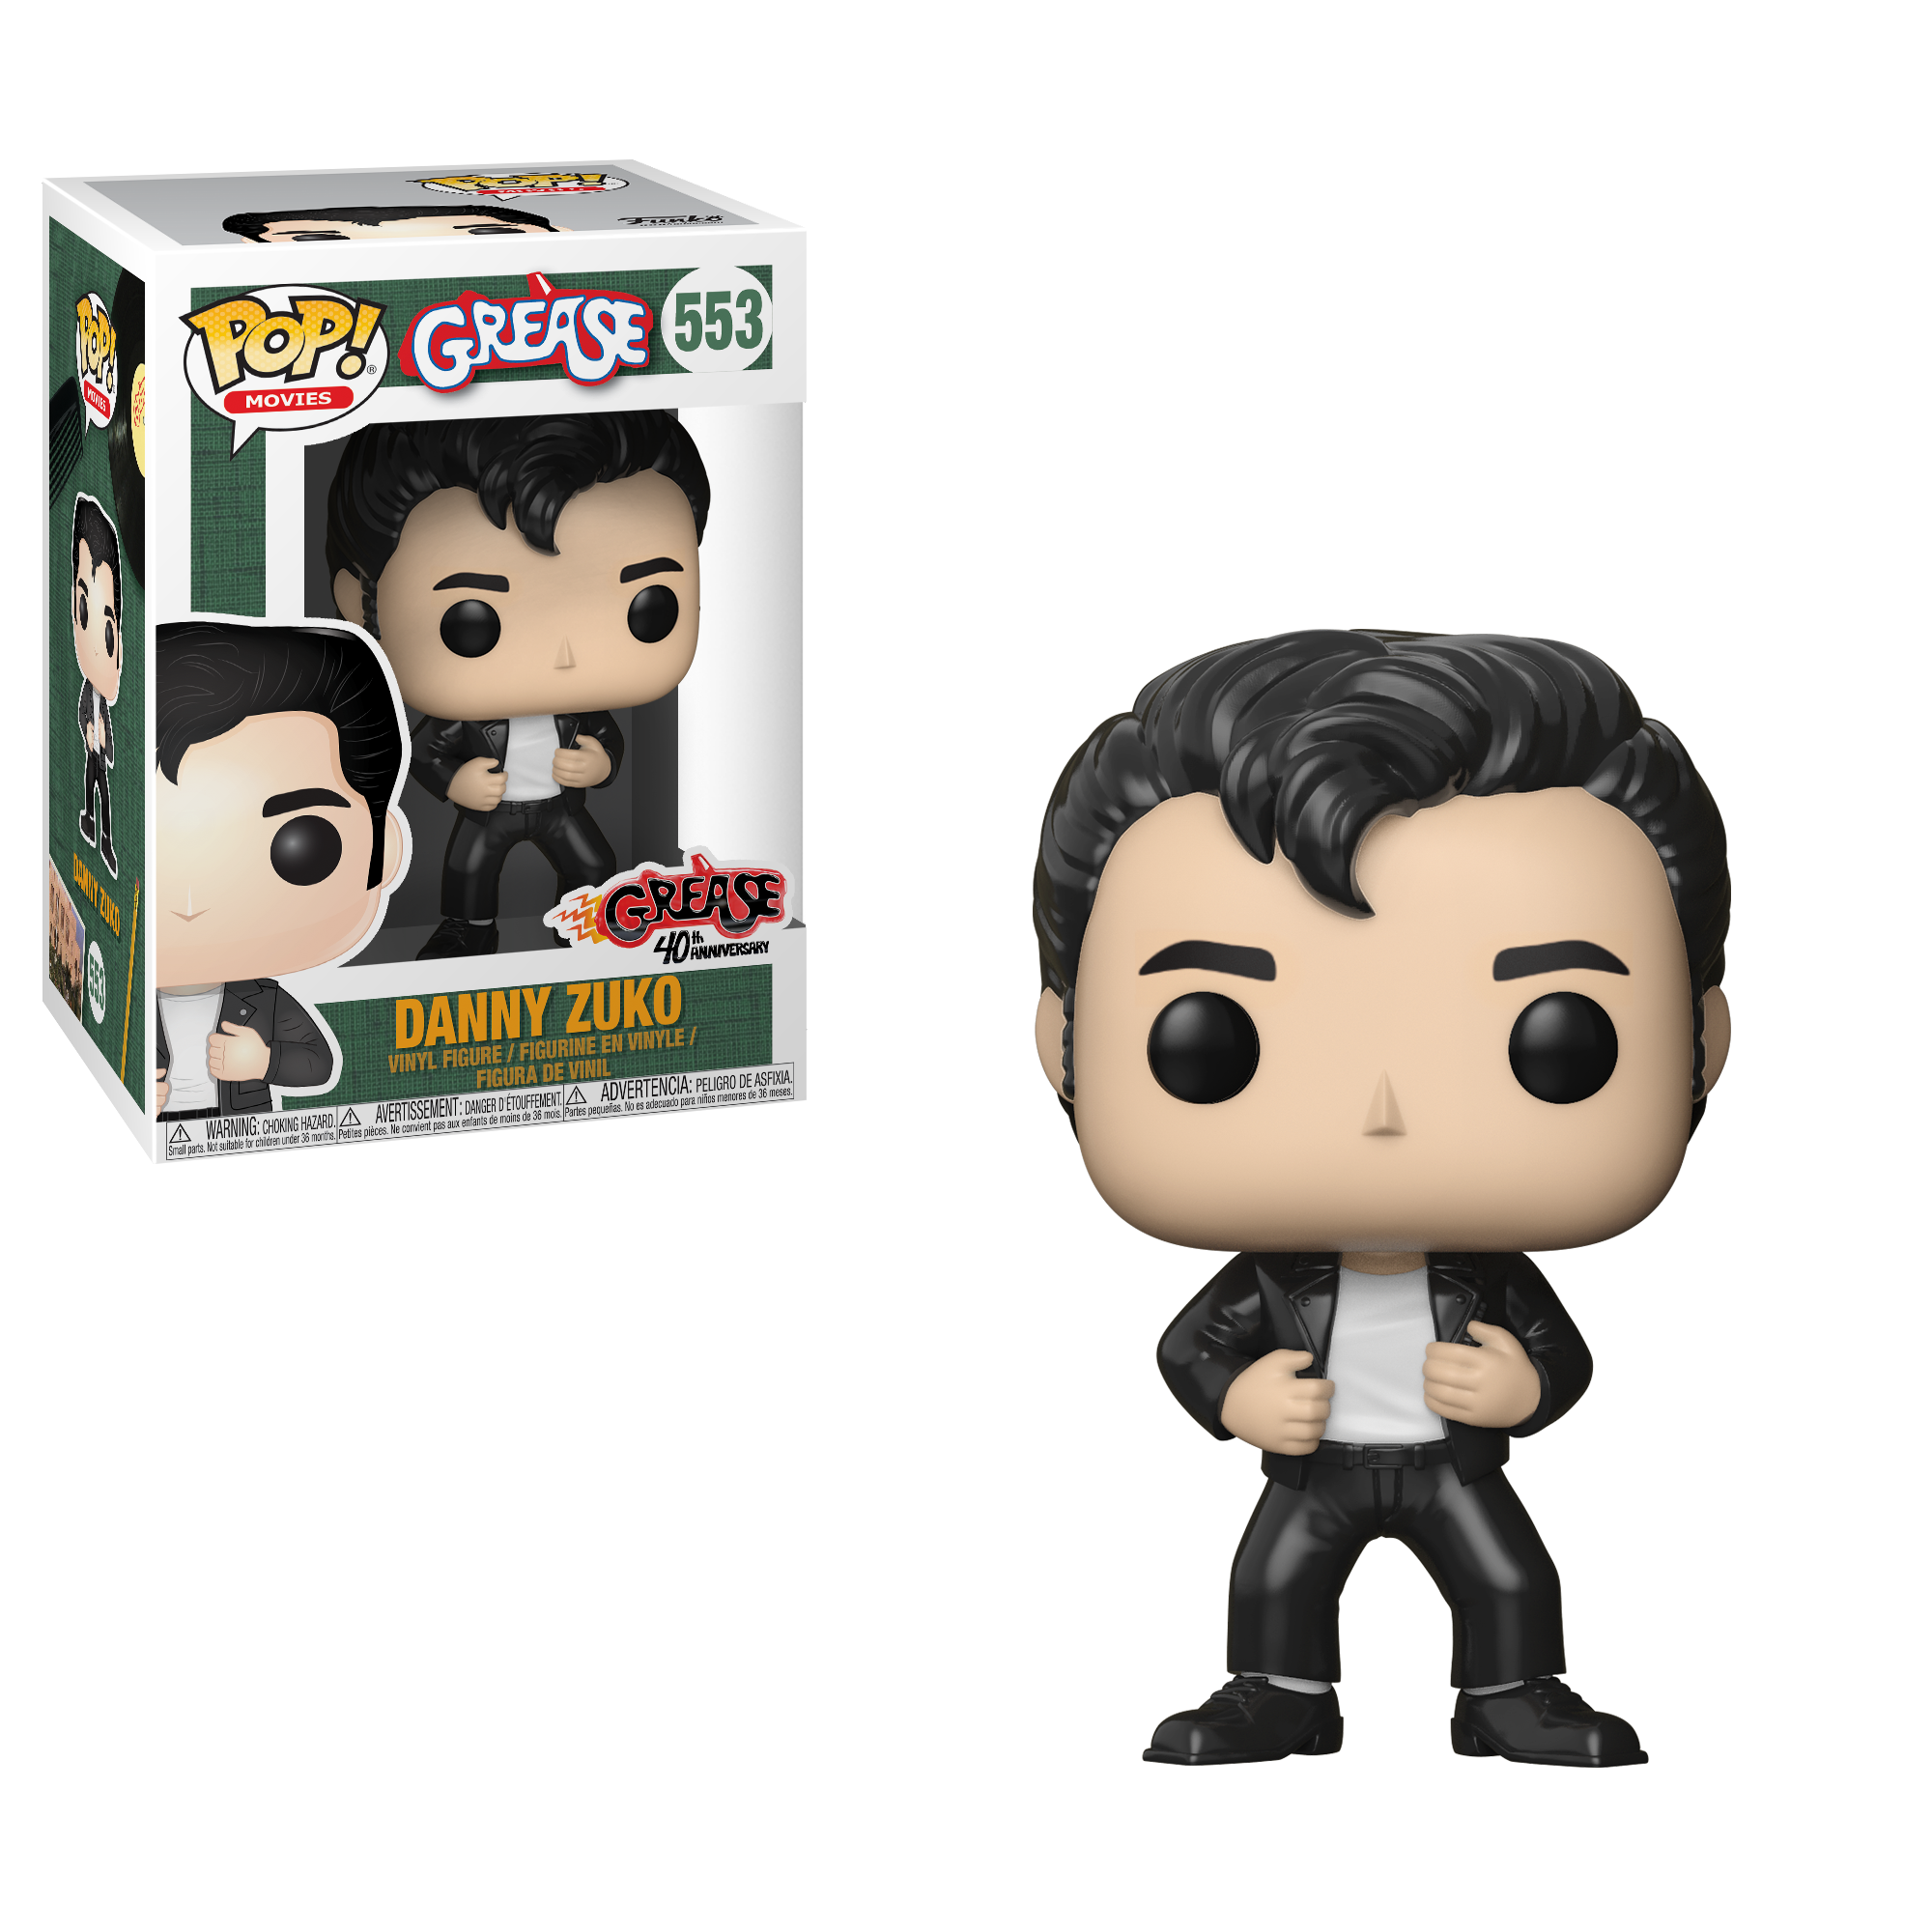 Grease Pop! Vinyl Figure Danny Zuko [553] - Fugitive Toys